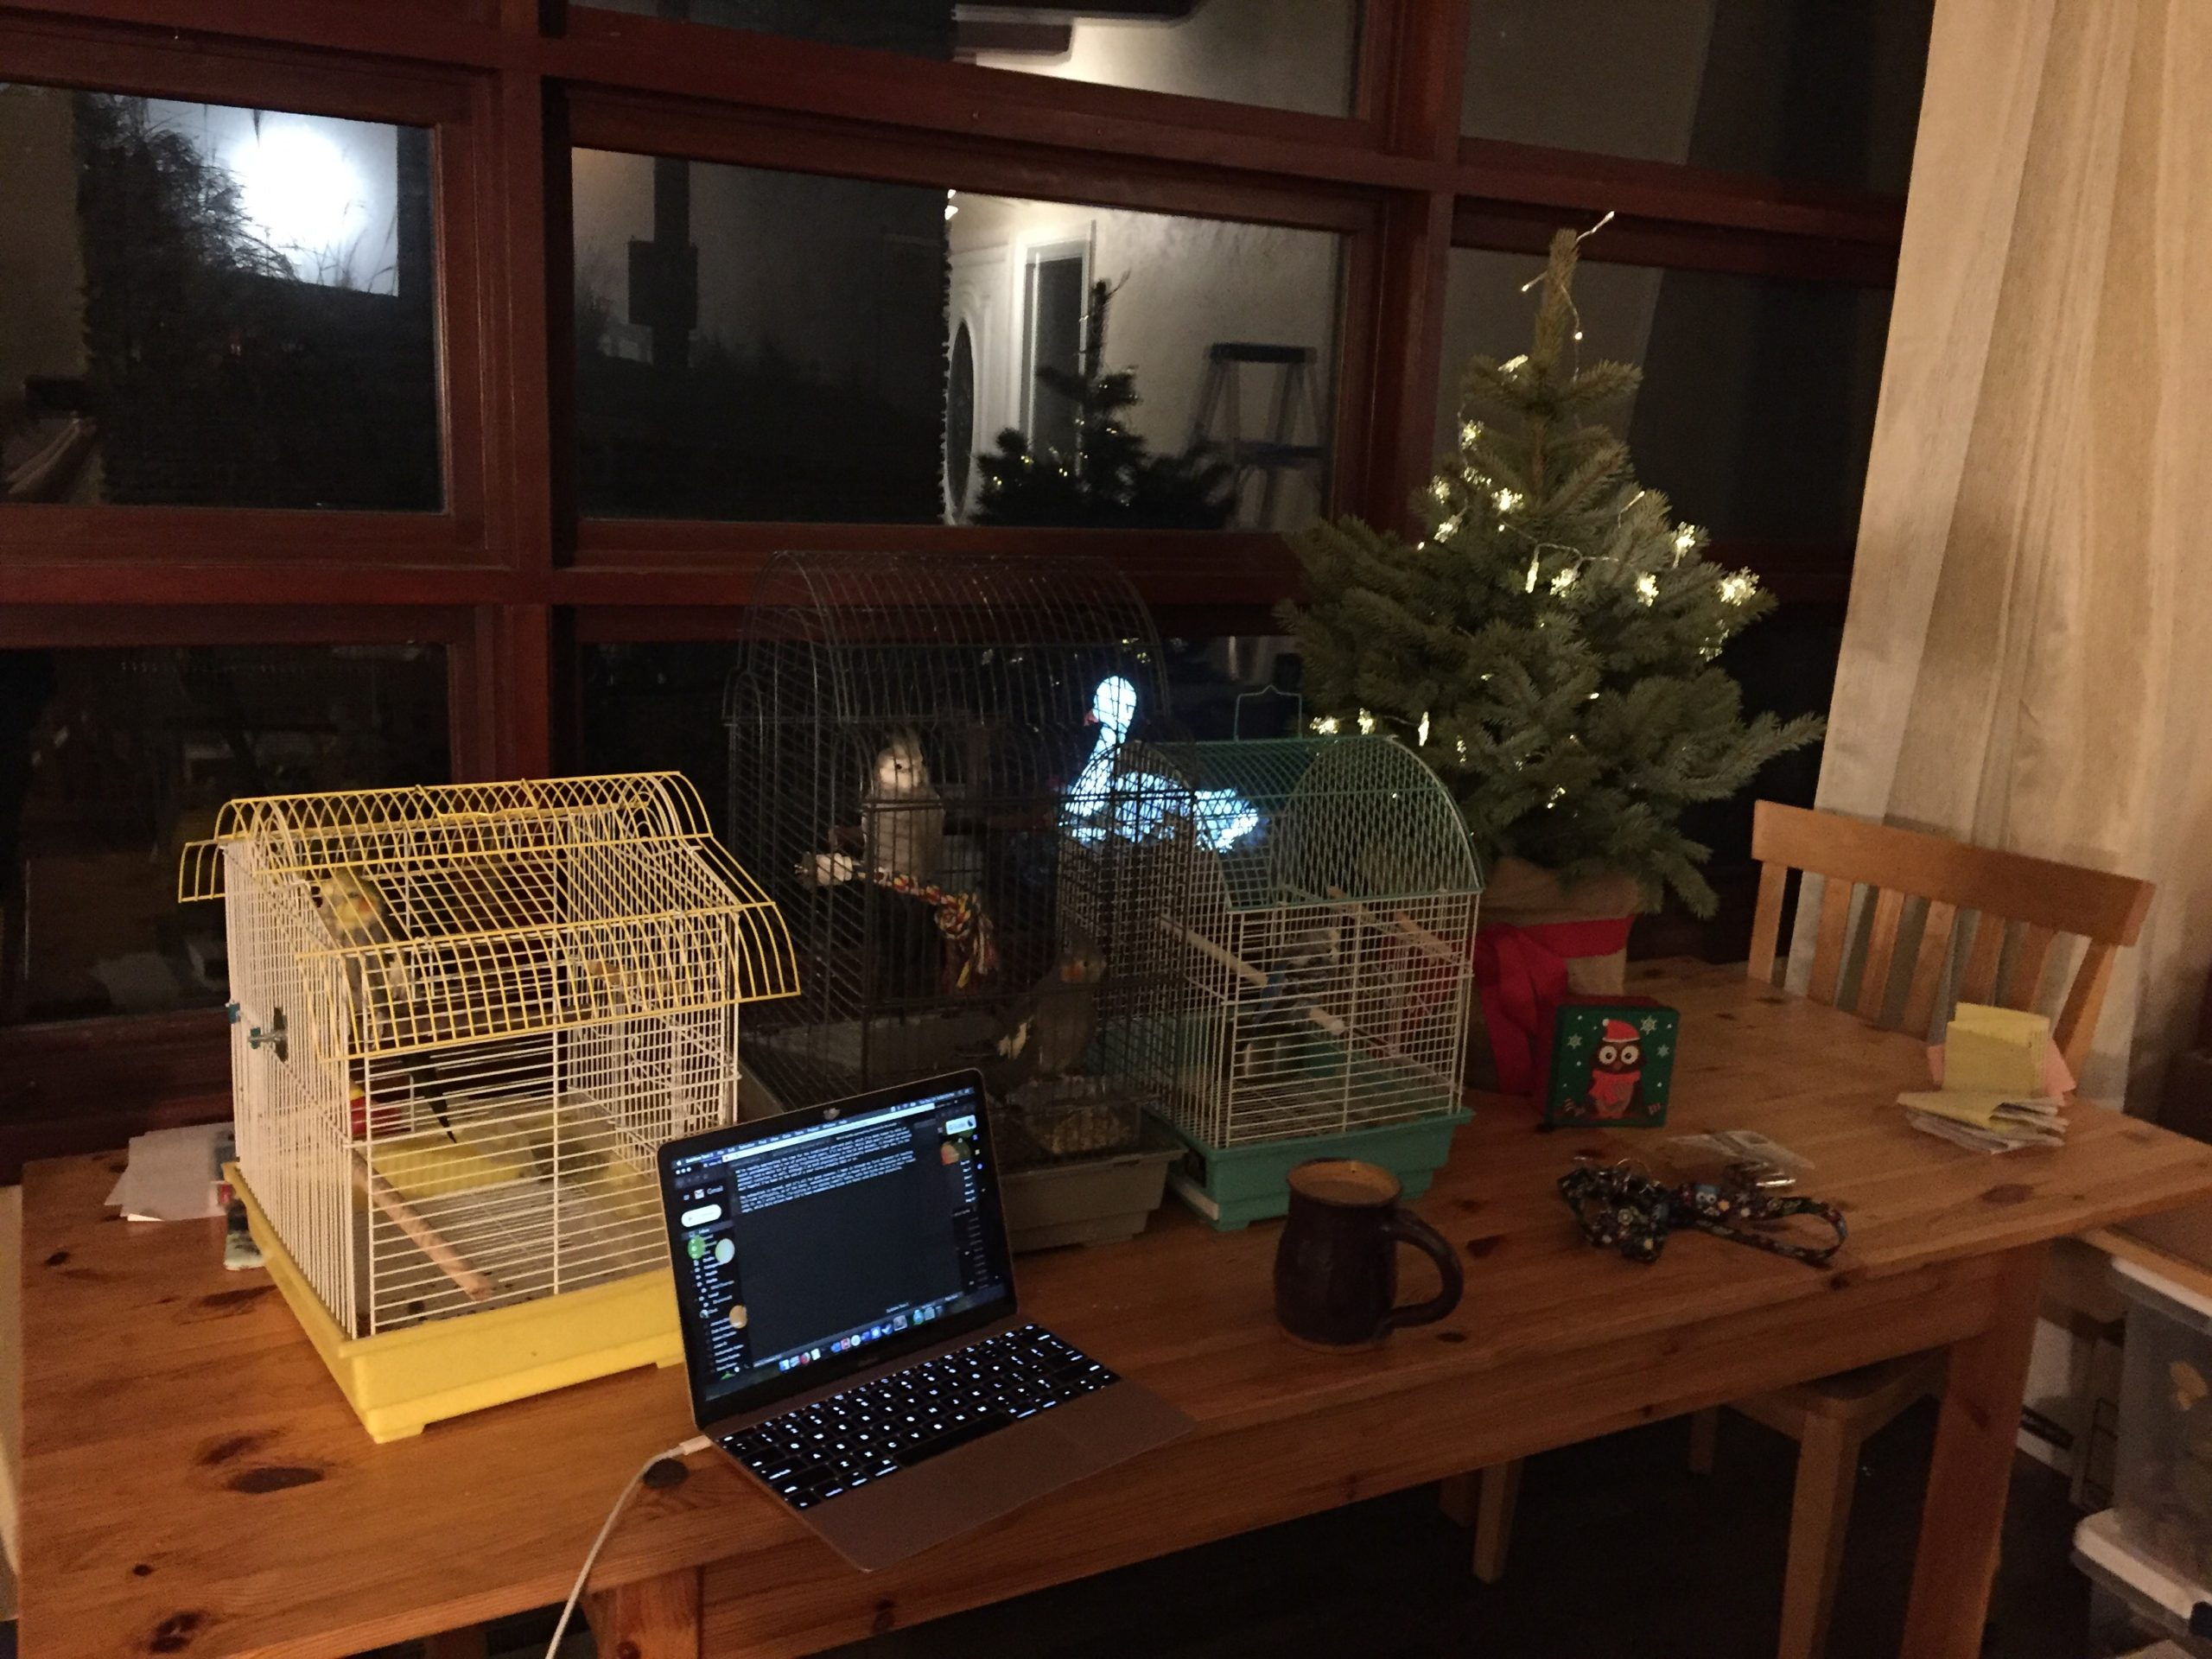 A table in front of a window at night. On the table there is a laptop, three bird cages with four birds in them, a small live spruce tree with lights, a coffee cup, and various detritus that comes with moving.